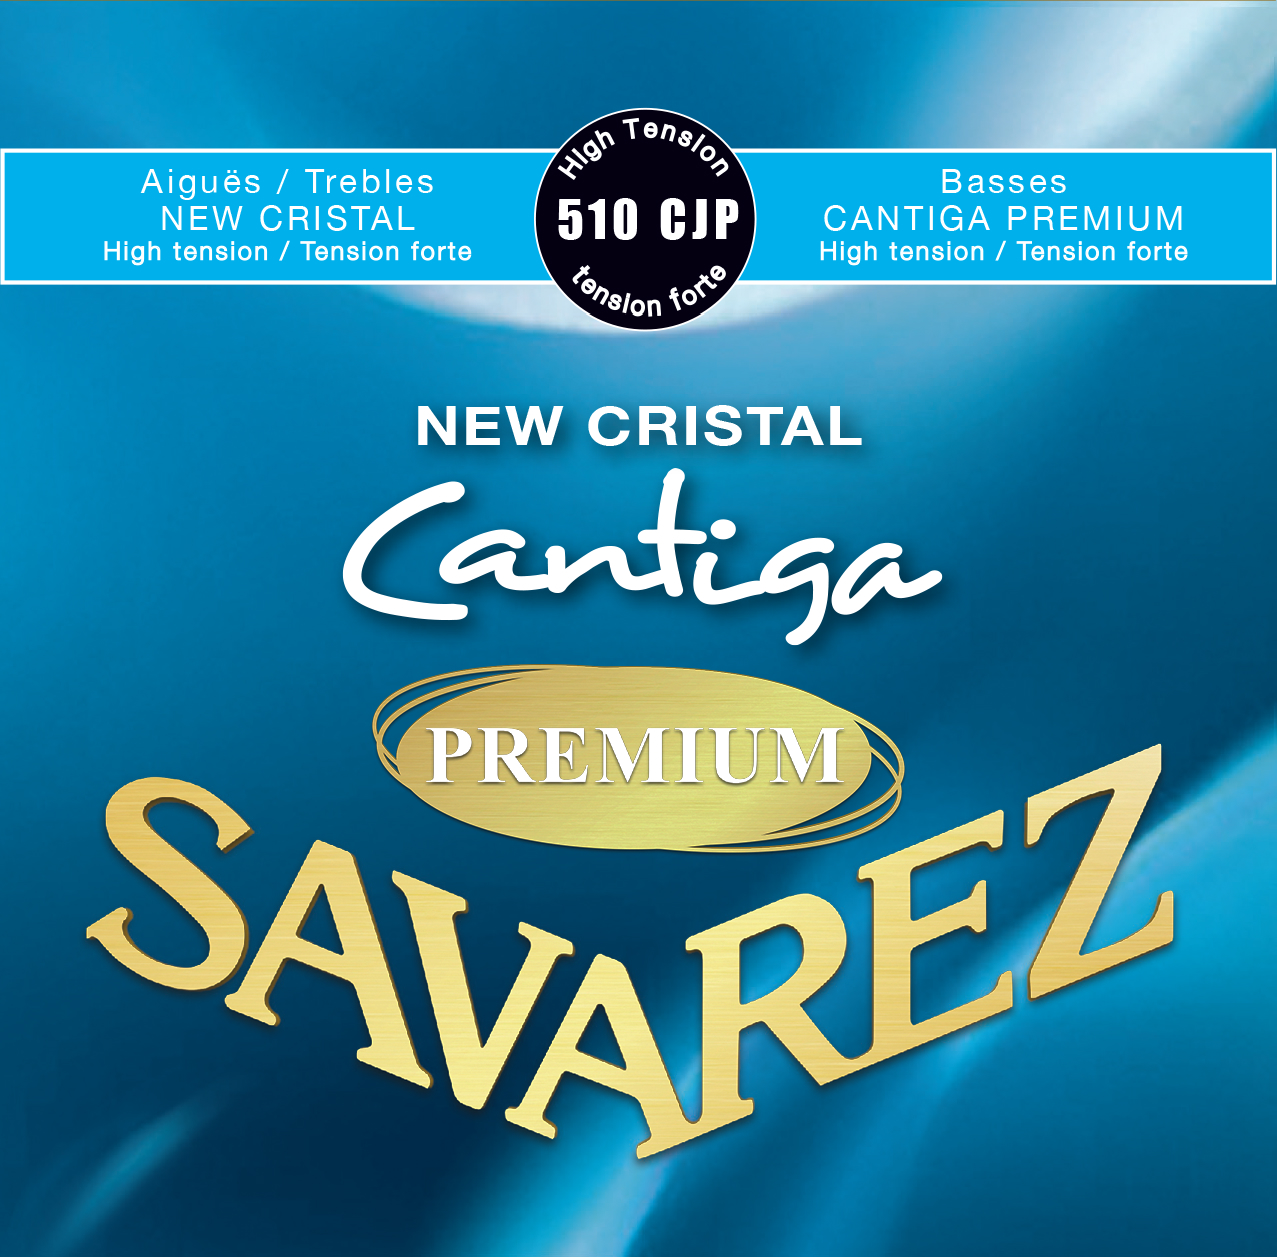 NEW CRISTAL CANTIGA PREMIUM TENSION FORTE 510CJP